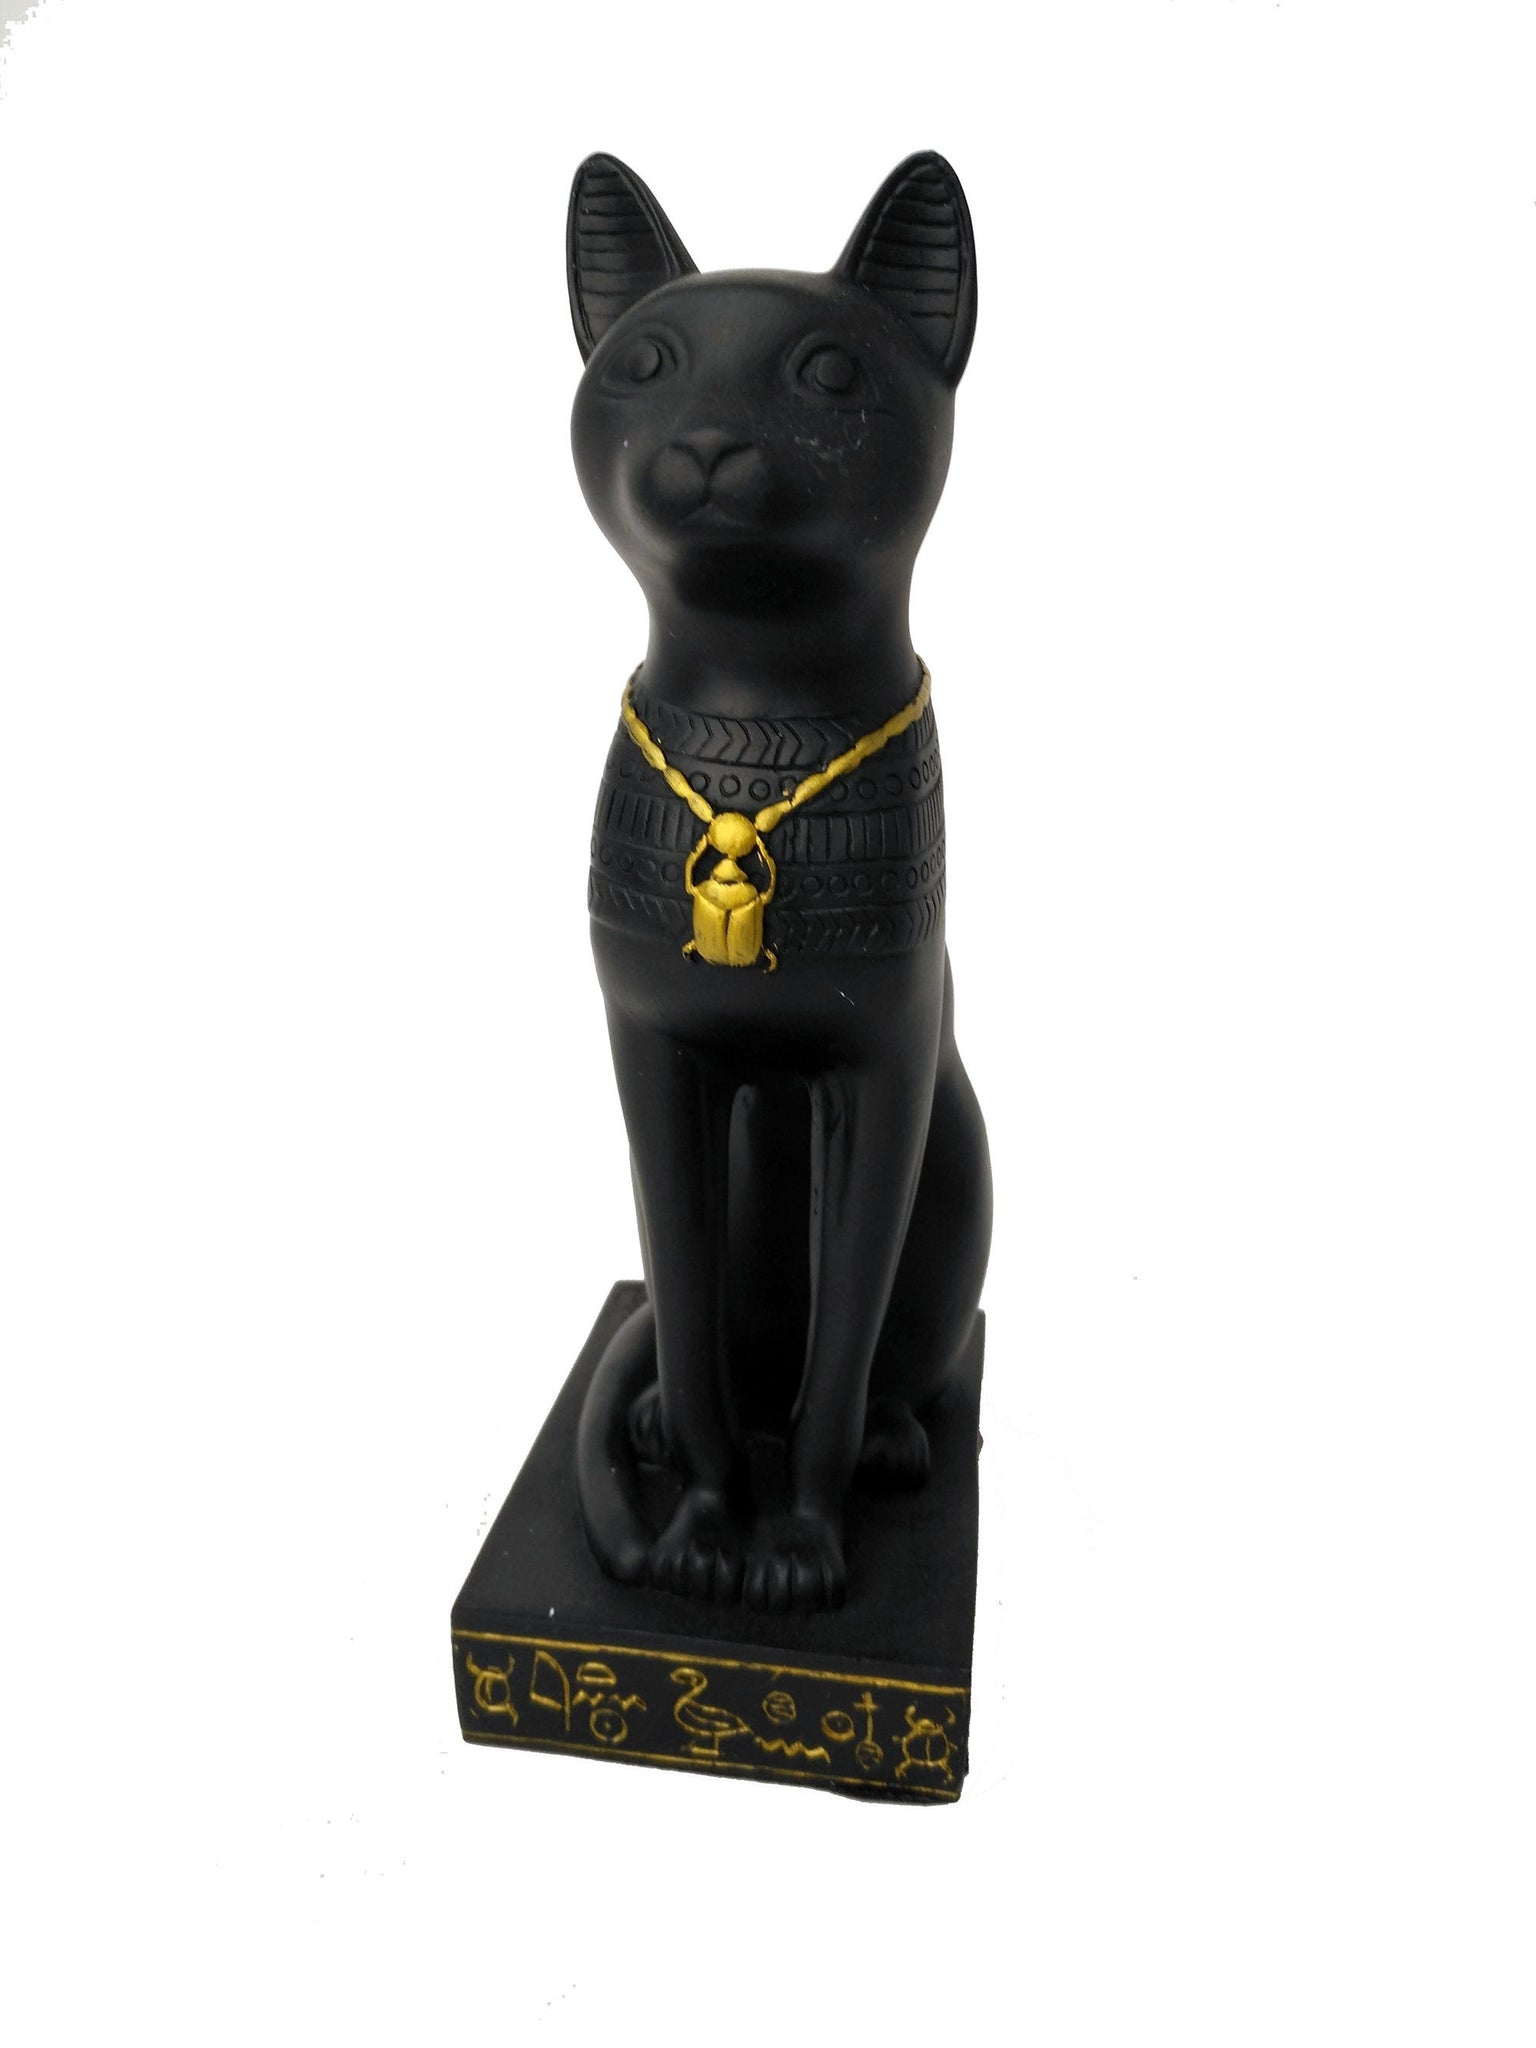 Bastet Statue - Ancient Egyptian Goddess Bastet with Hieroglyphic Base & Scarab Amulet